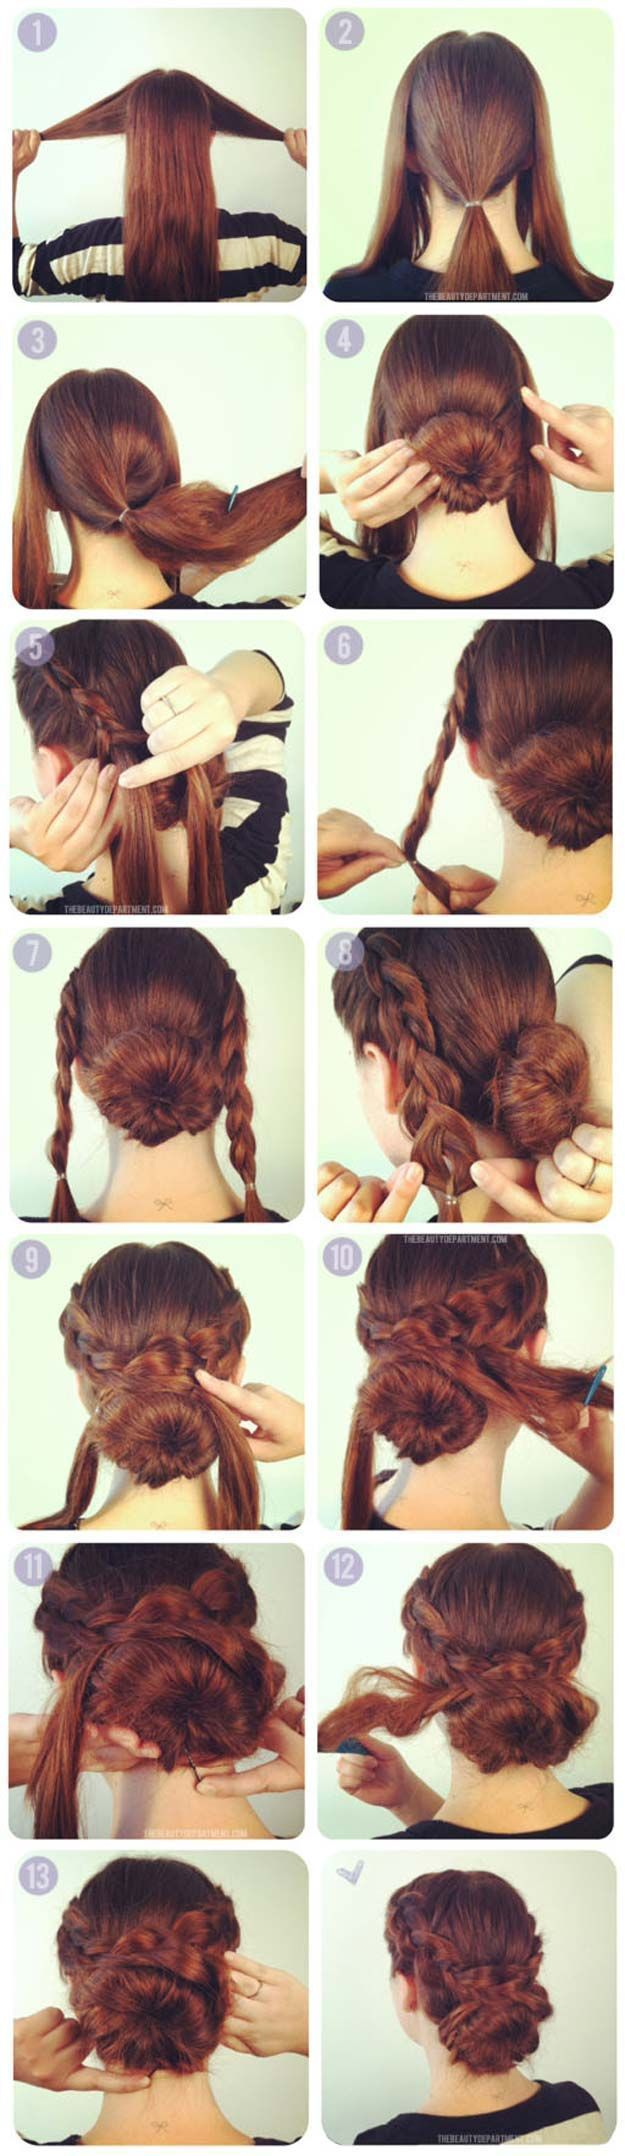 Best hairstyles for long hair hot crossed bun step by step